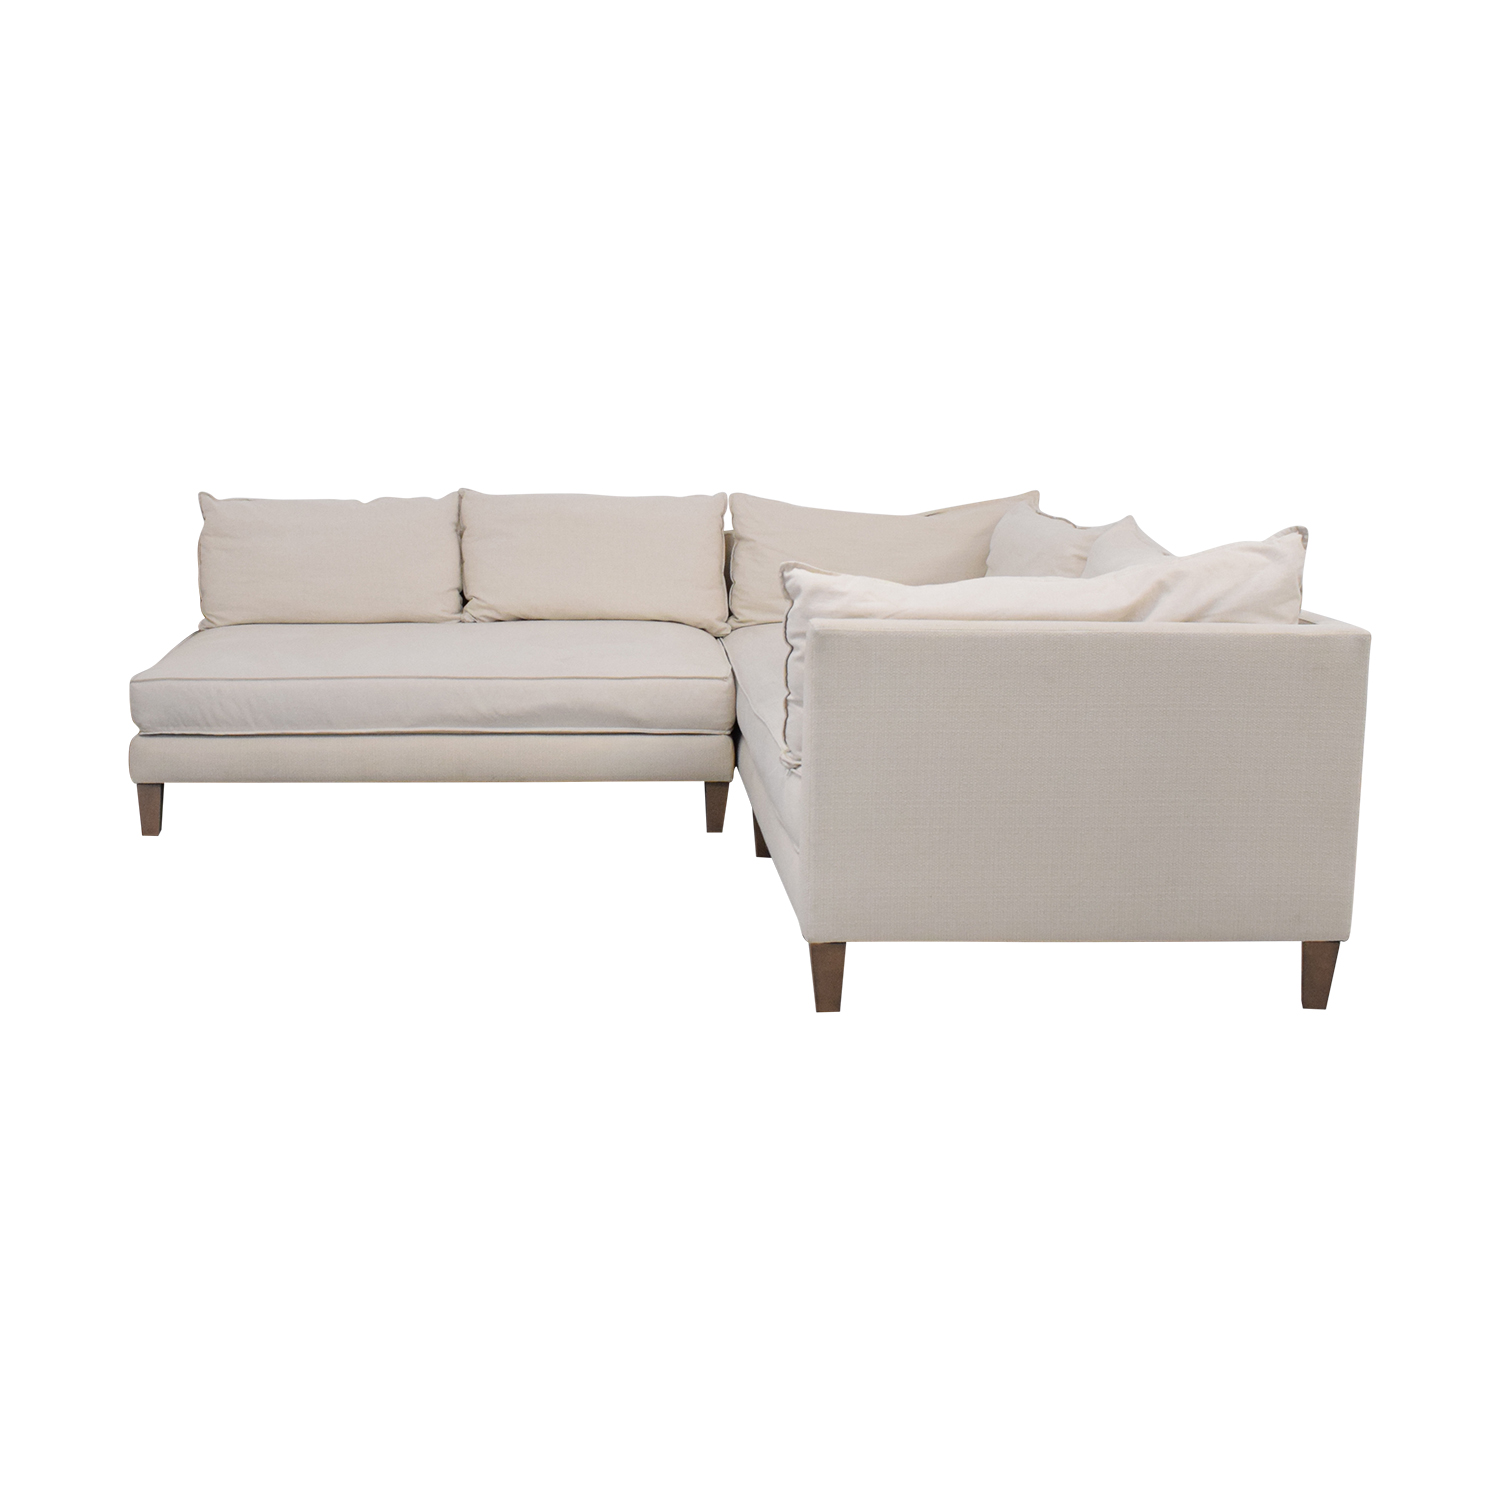 Crate & Barrel Crate & Barrel L Shaped Modular Sofa ct